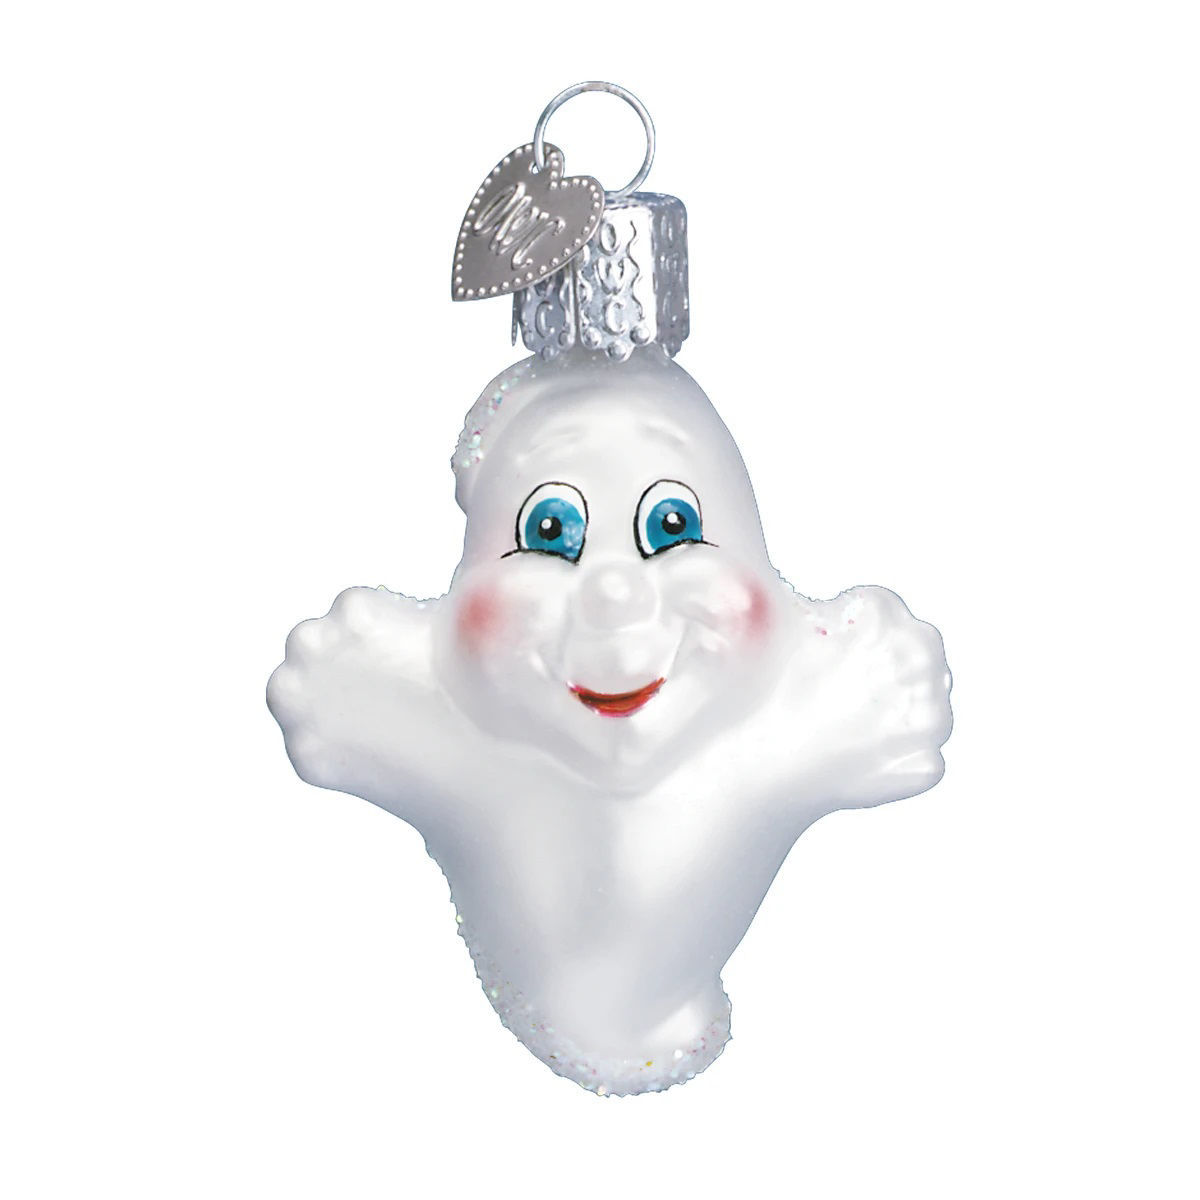 Miniature Ghost Ornament by Old World Christmas